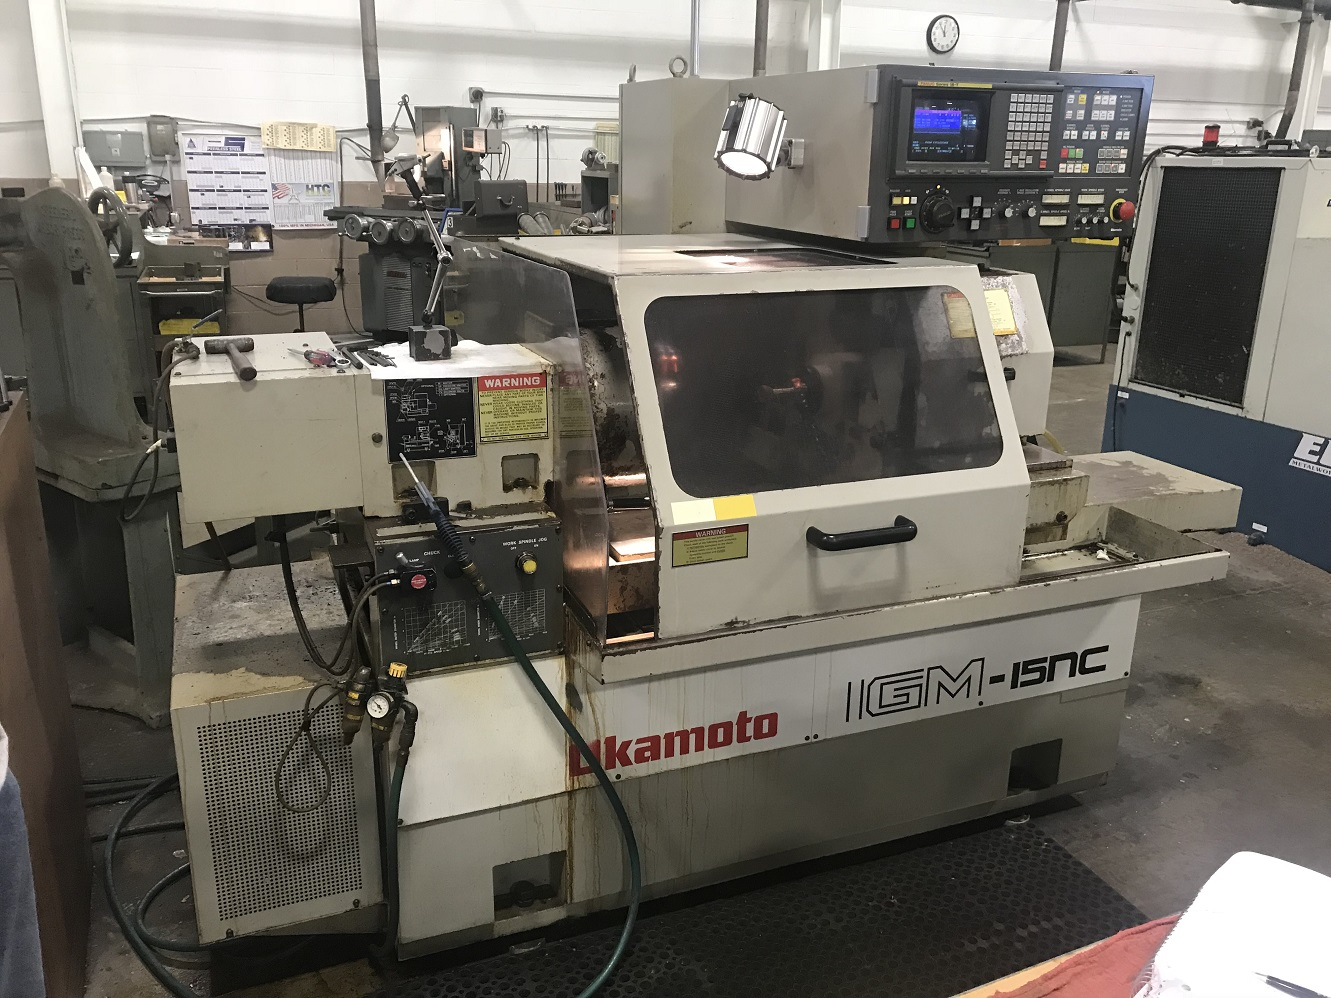 "Okamoto IGM-15NC CNC Internal Grinder, Fanuc 18iT, 24"" Swing, 6"" Bore, 5"" Stroke, 20"" Long. Travel, Dresser, 5°-15° Workhead Swivel, 3-Jaw Air Chuck, (2) ID Spindle (20k/40k), Clnt w/Mag Sep, 2000"